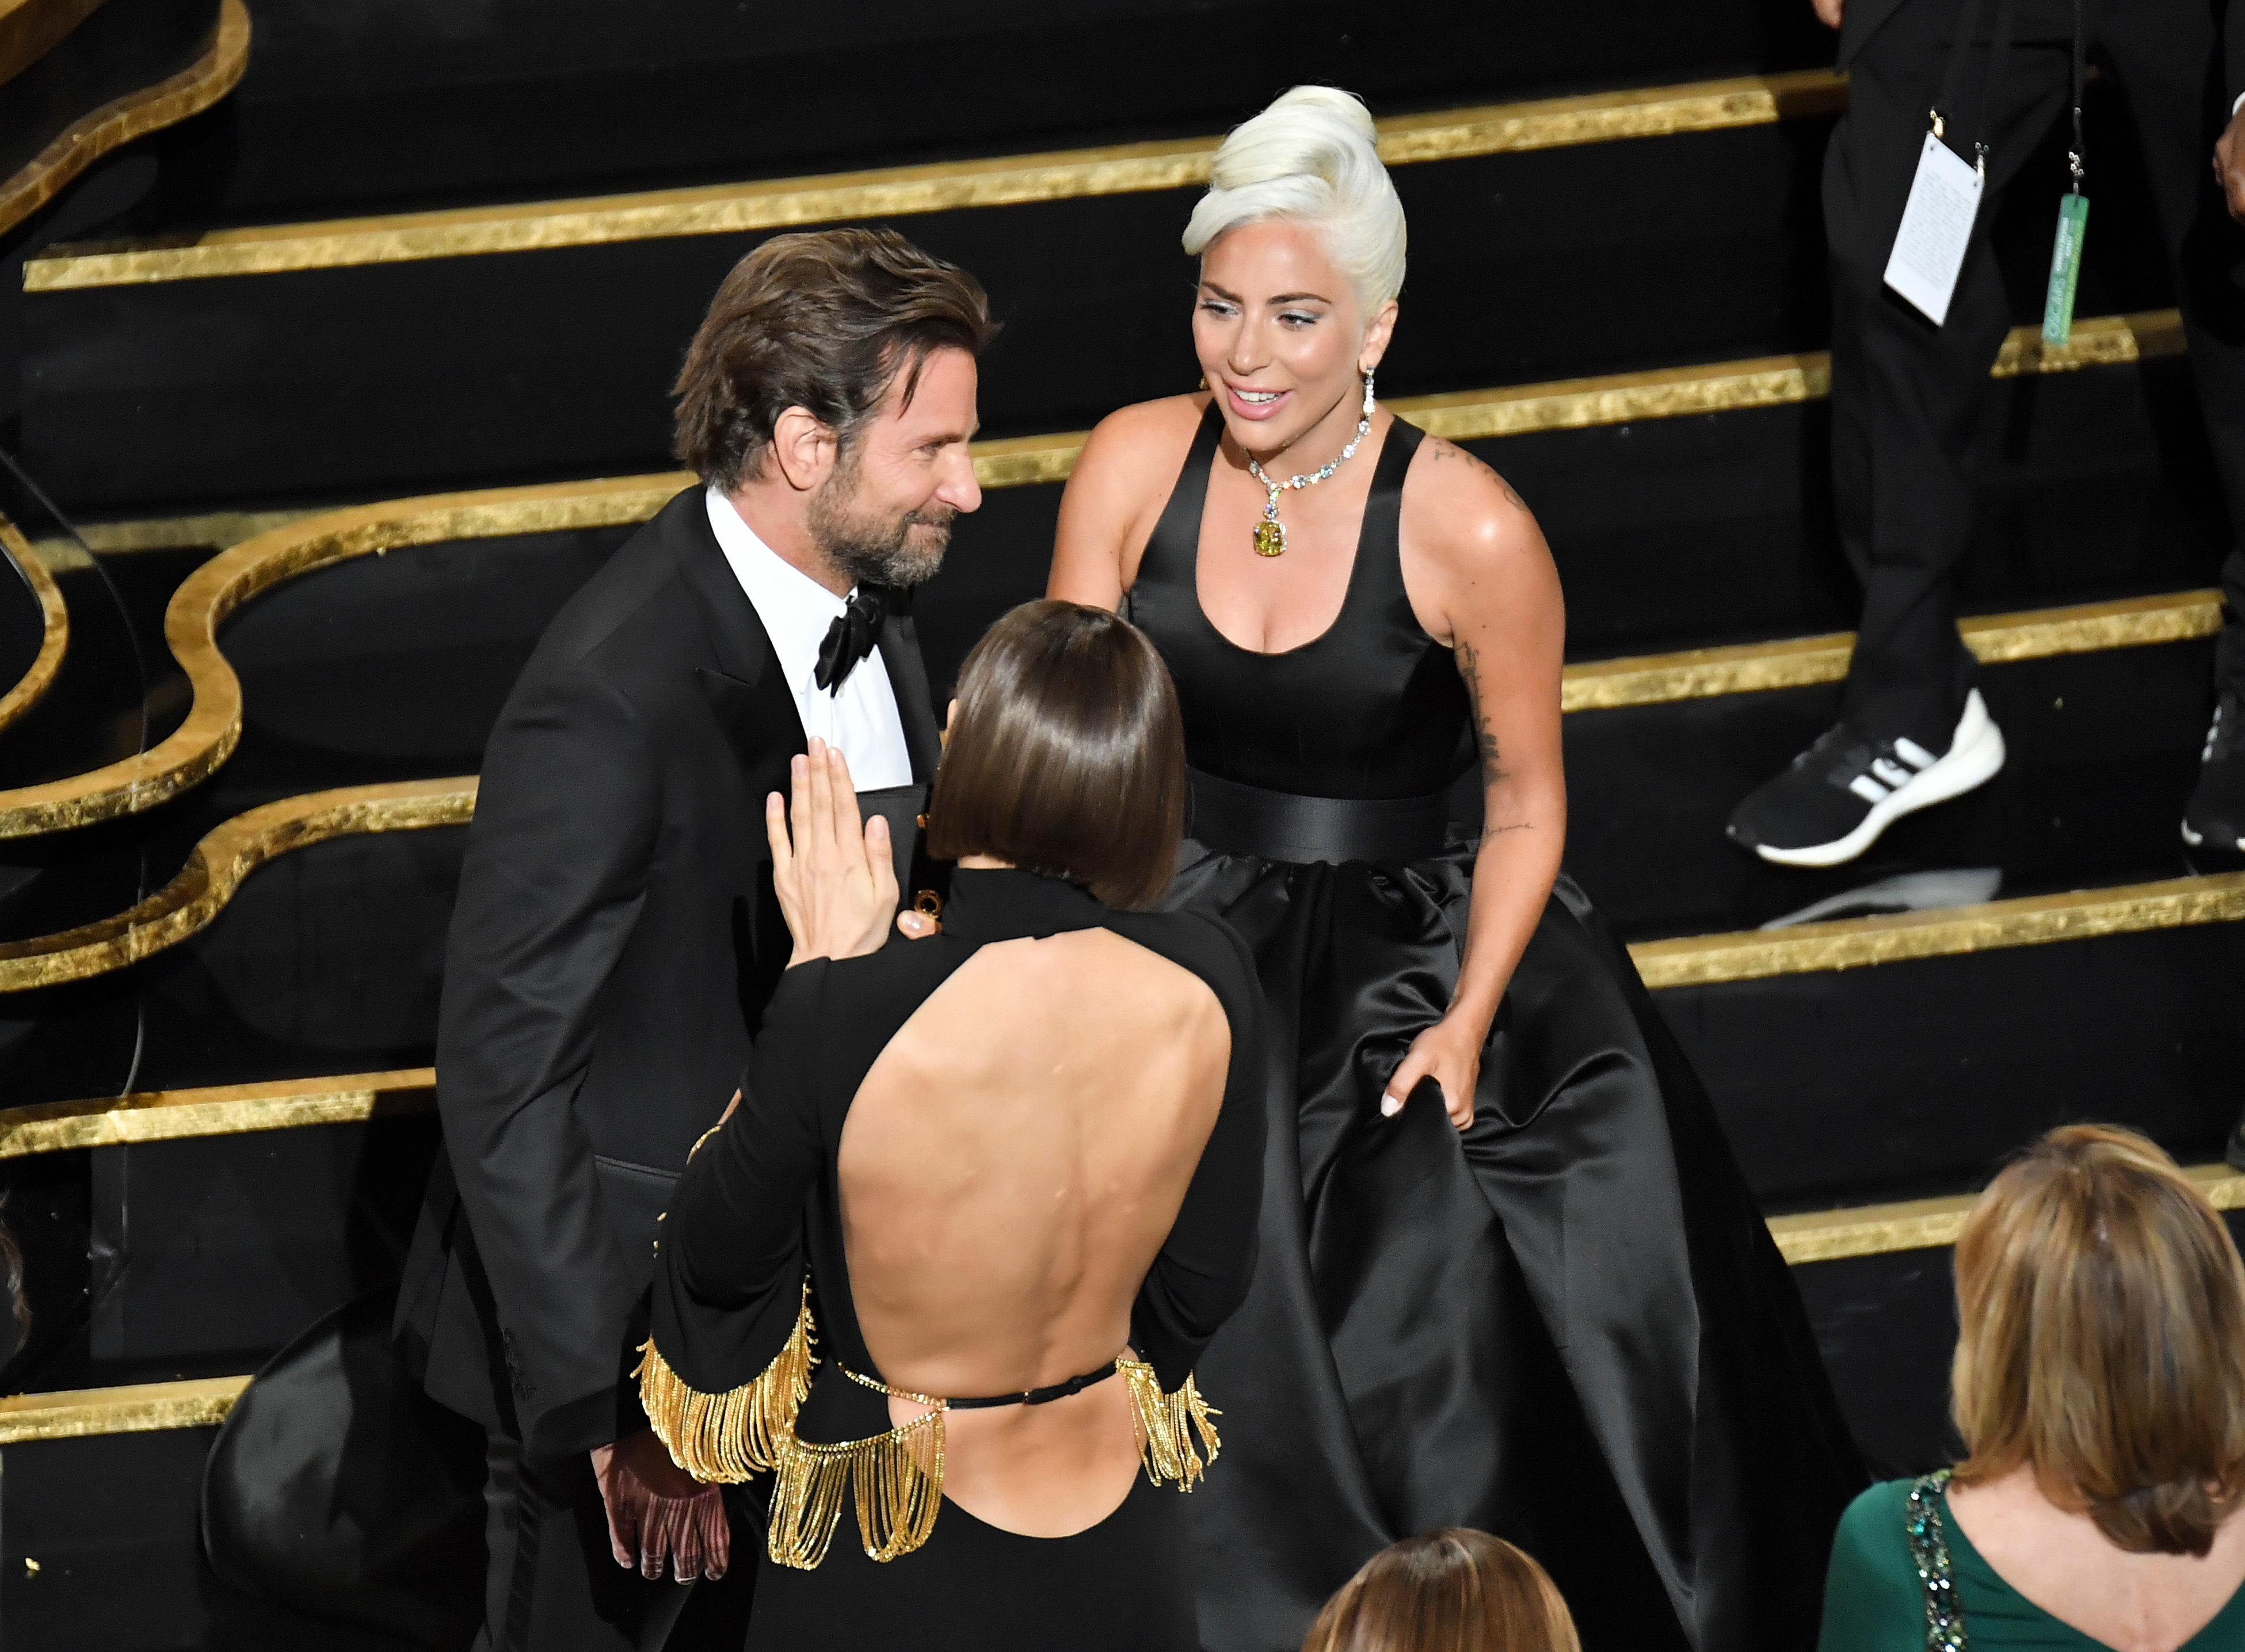 Bradley Cooper, Irina Shayk and Lady Gaga are seen together at the 91st Annual Academy Awards in Hollywood on Feb. 24, 2019.